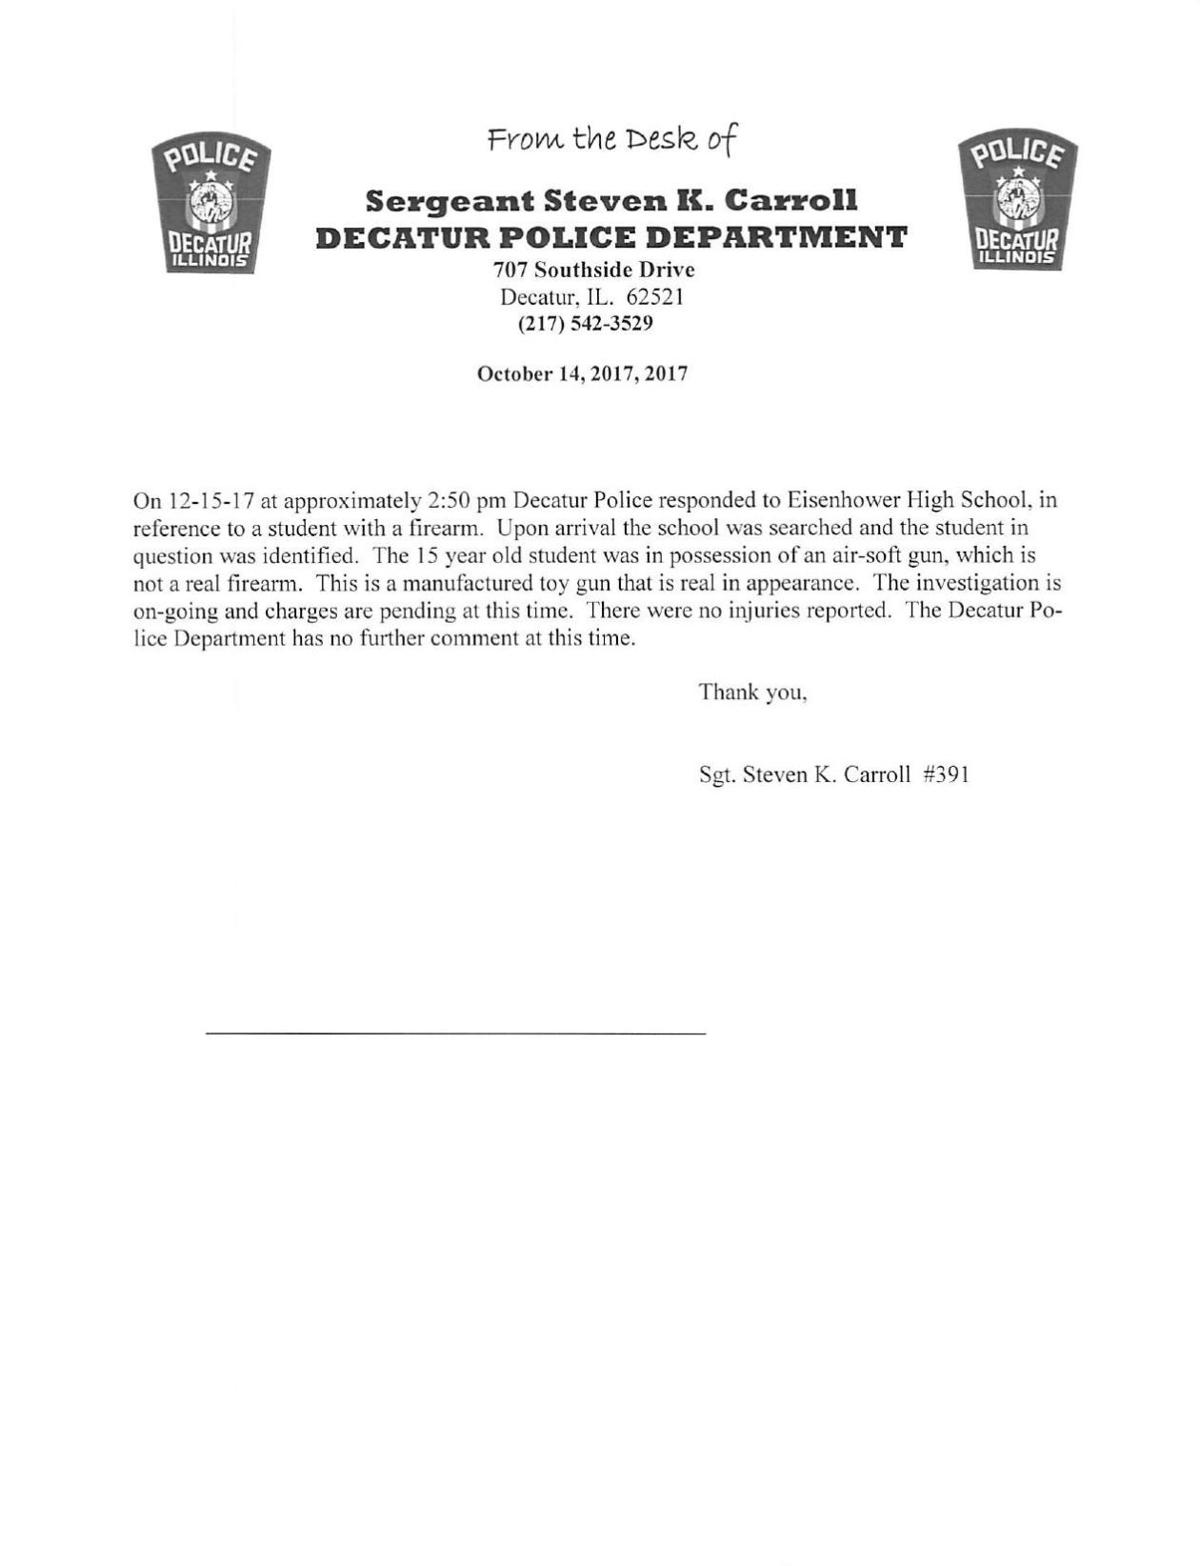 Decatur Police Department press release